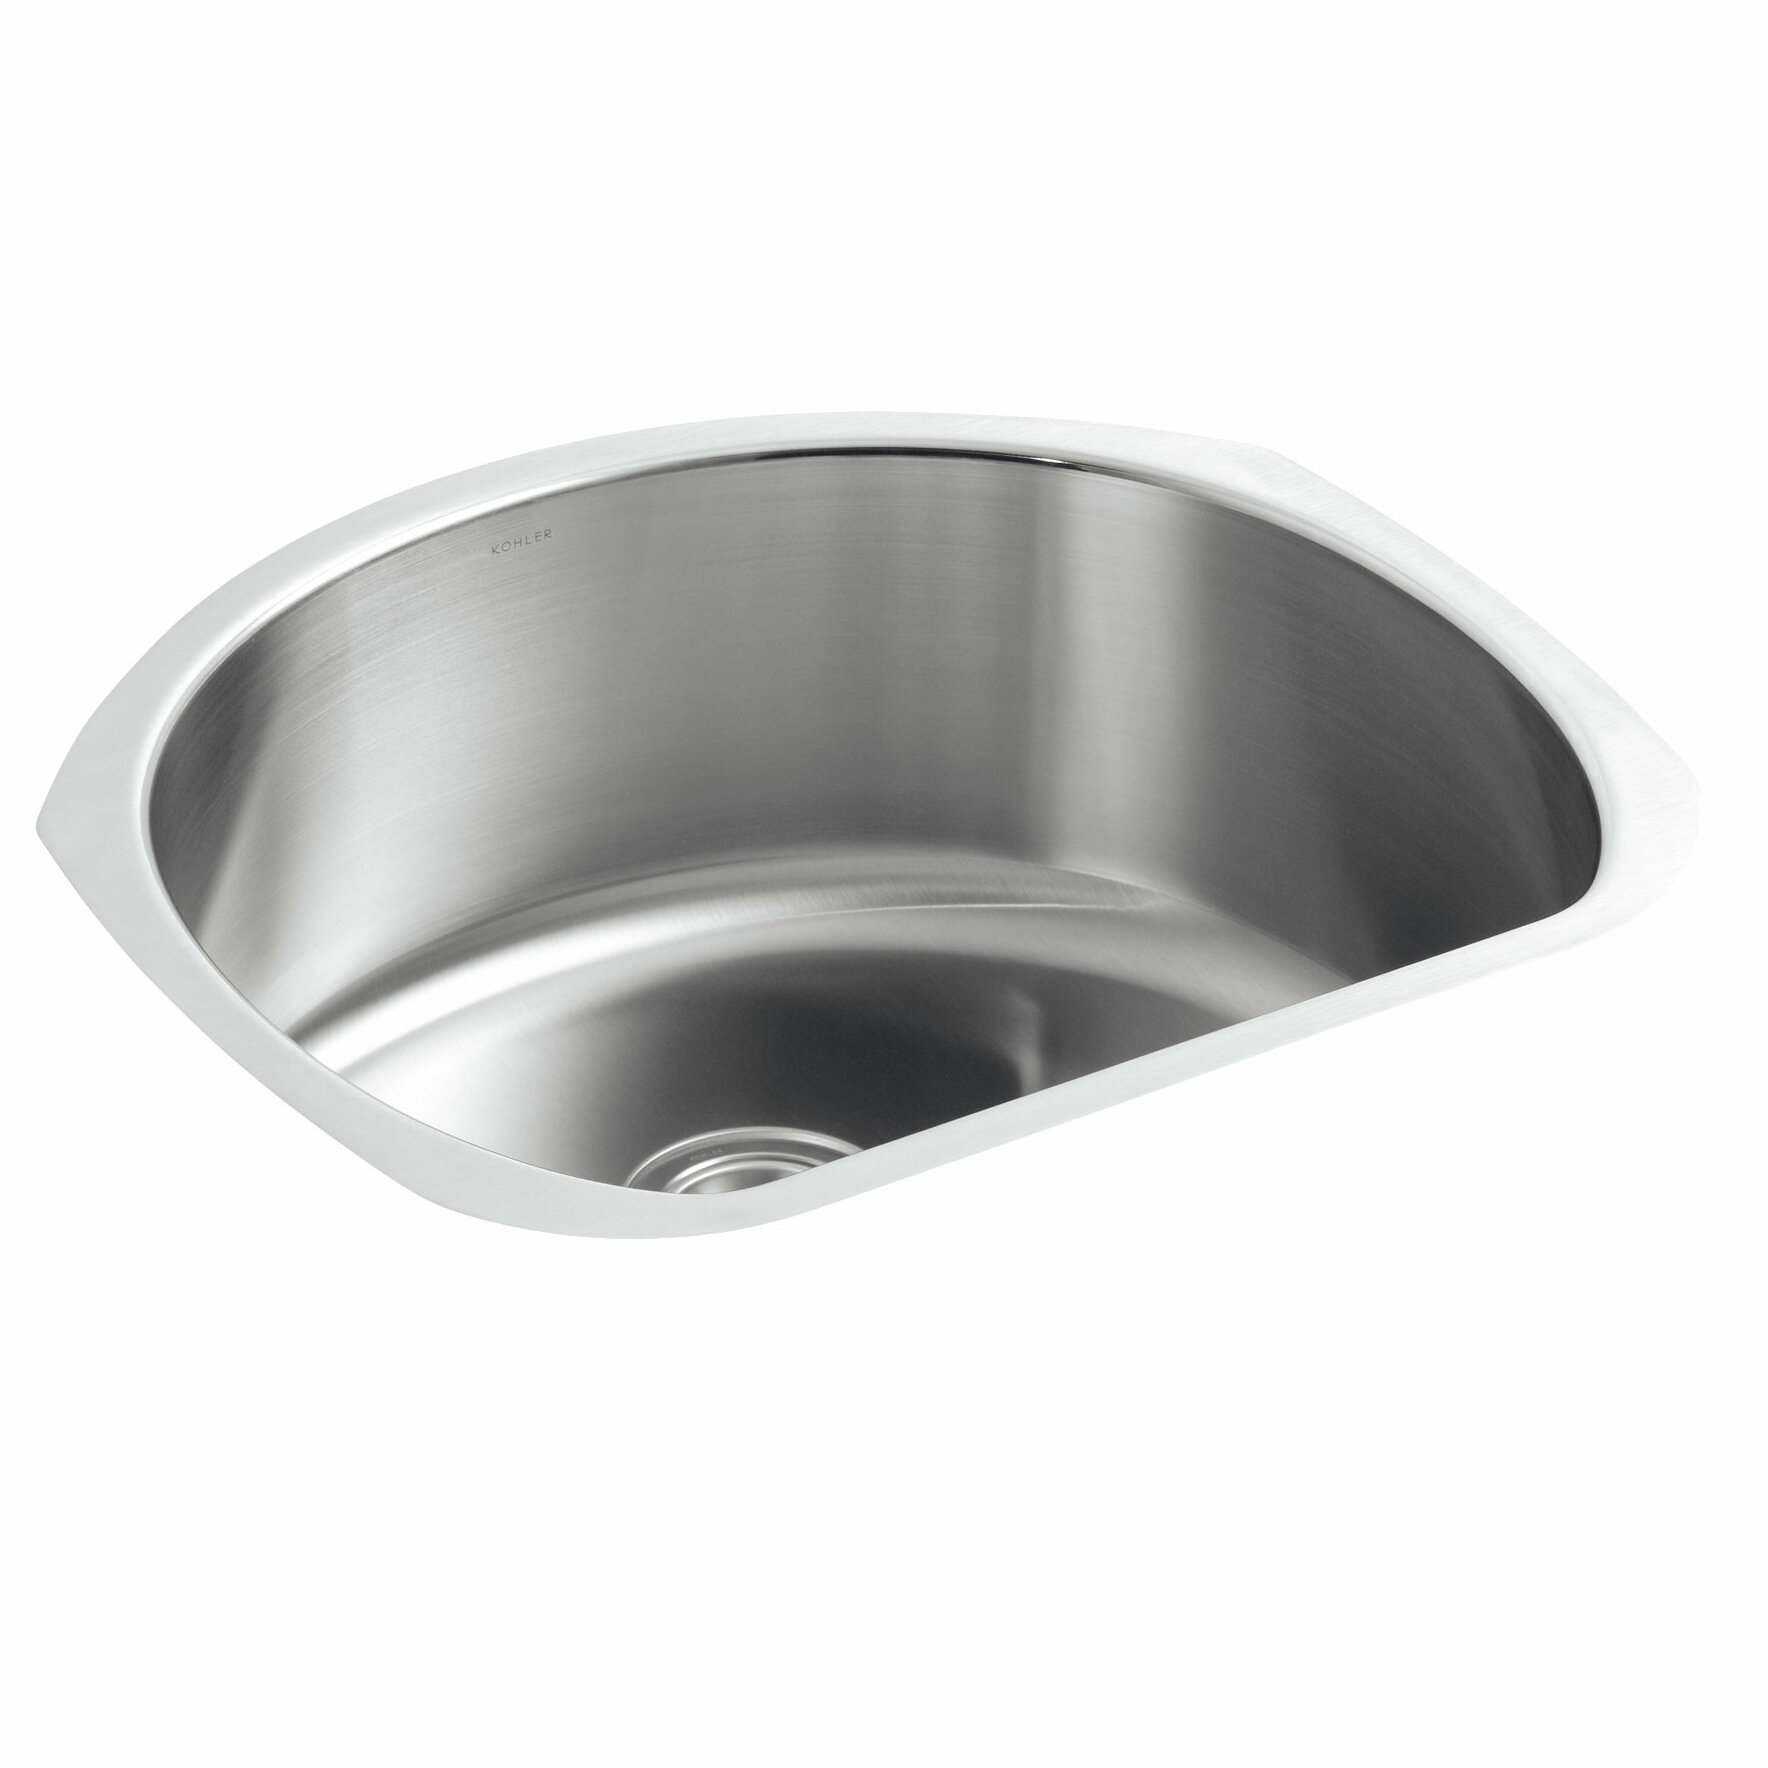 Kohler Undertone 24 1 4 L X 21 W 9 2 Under Mount Medium D Shaped Single Bowl Kitchen Sink Wayfair